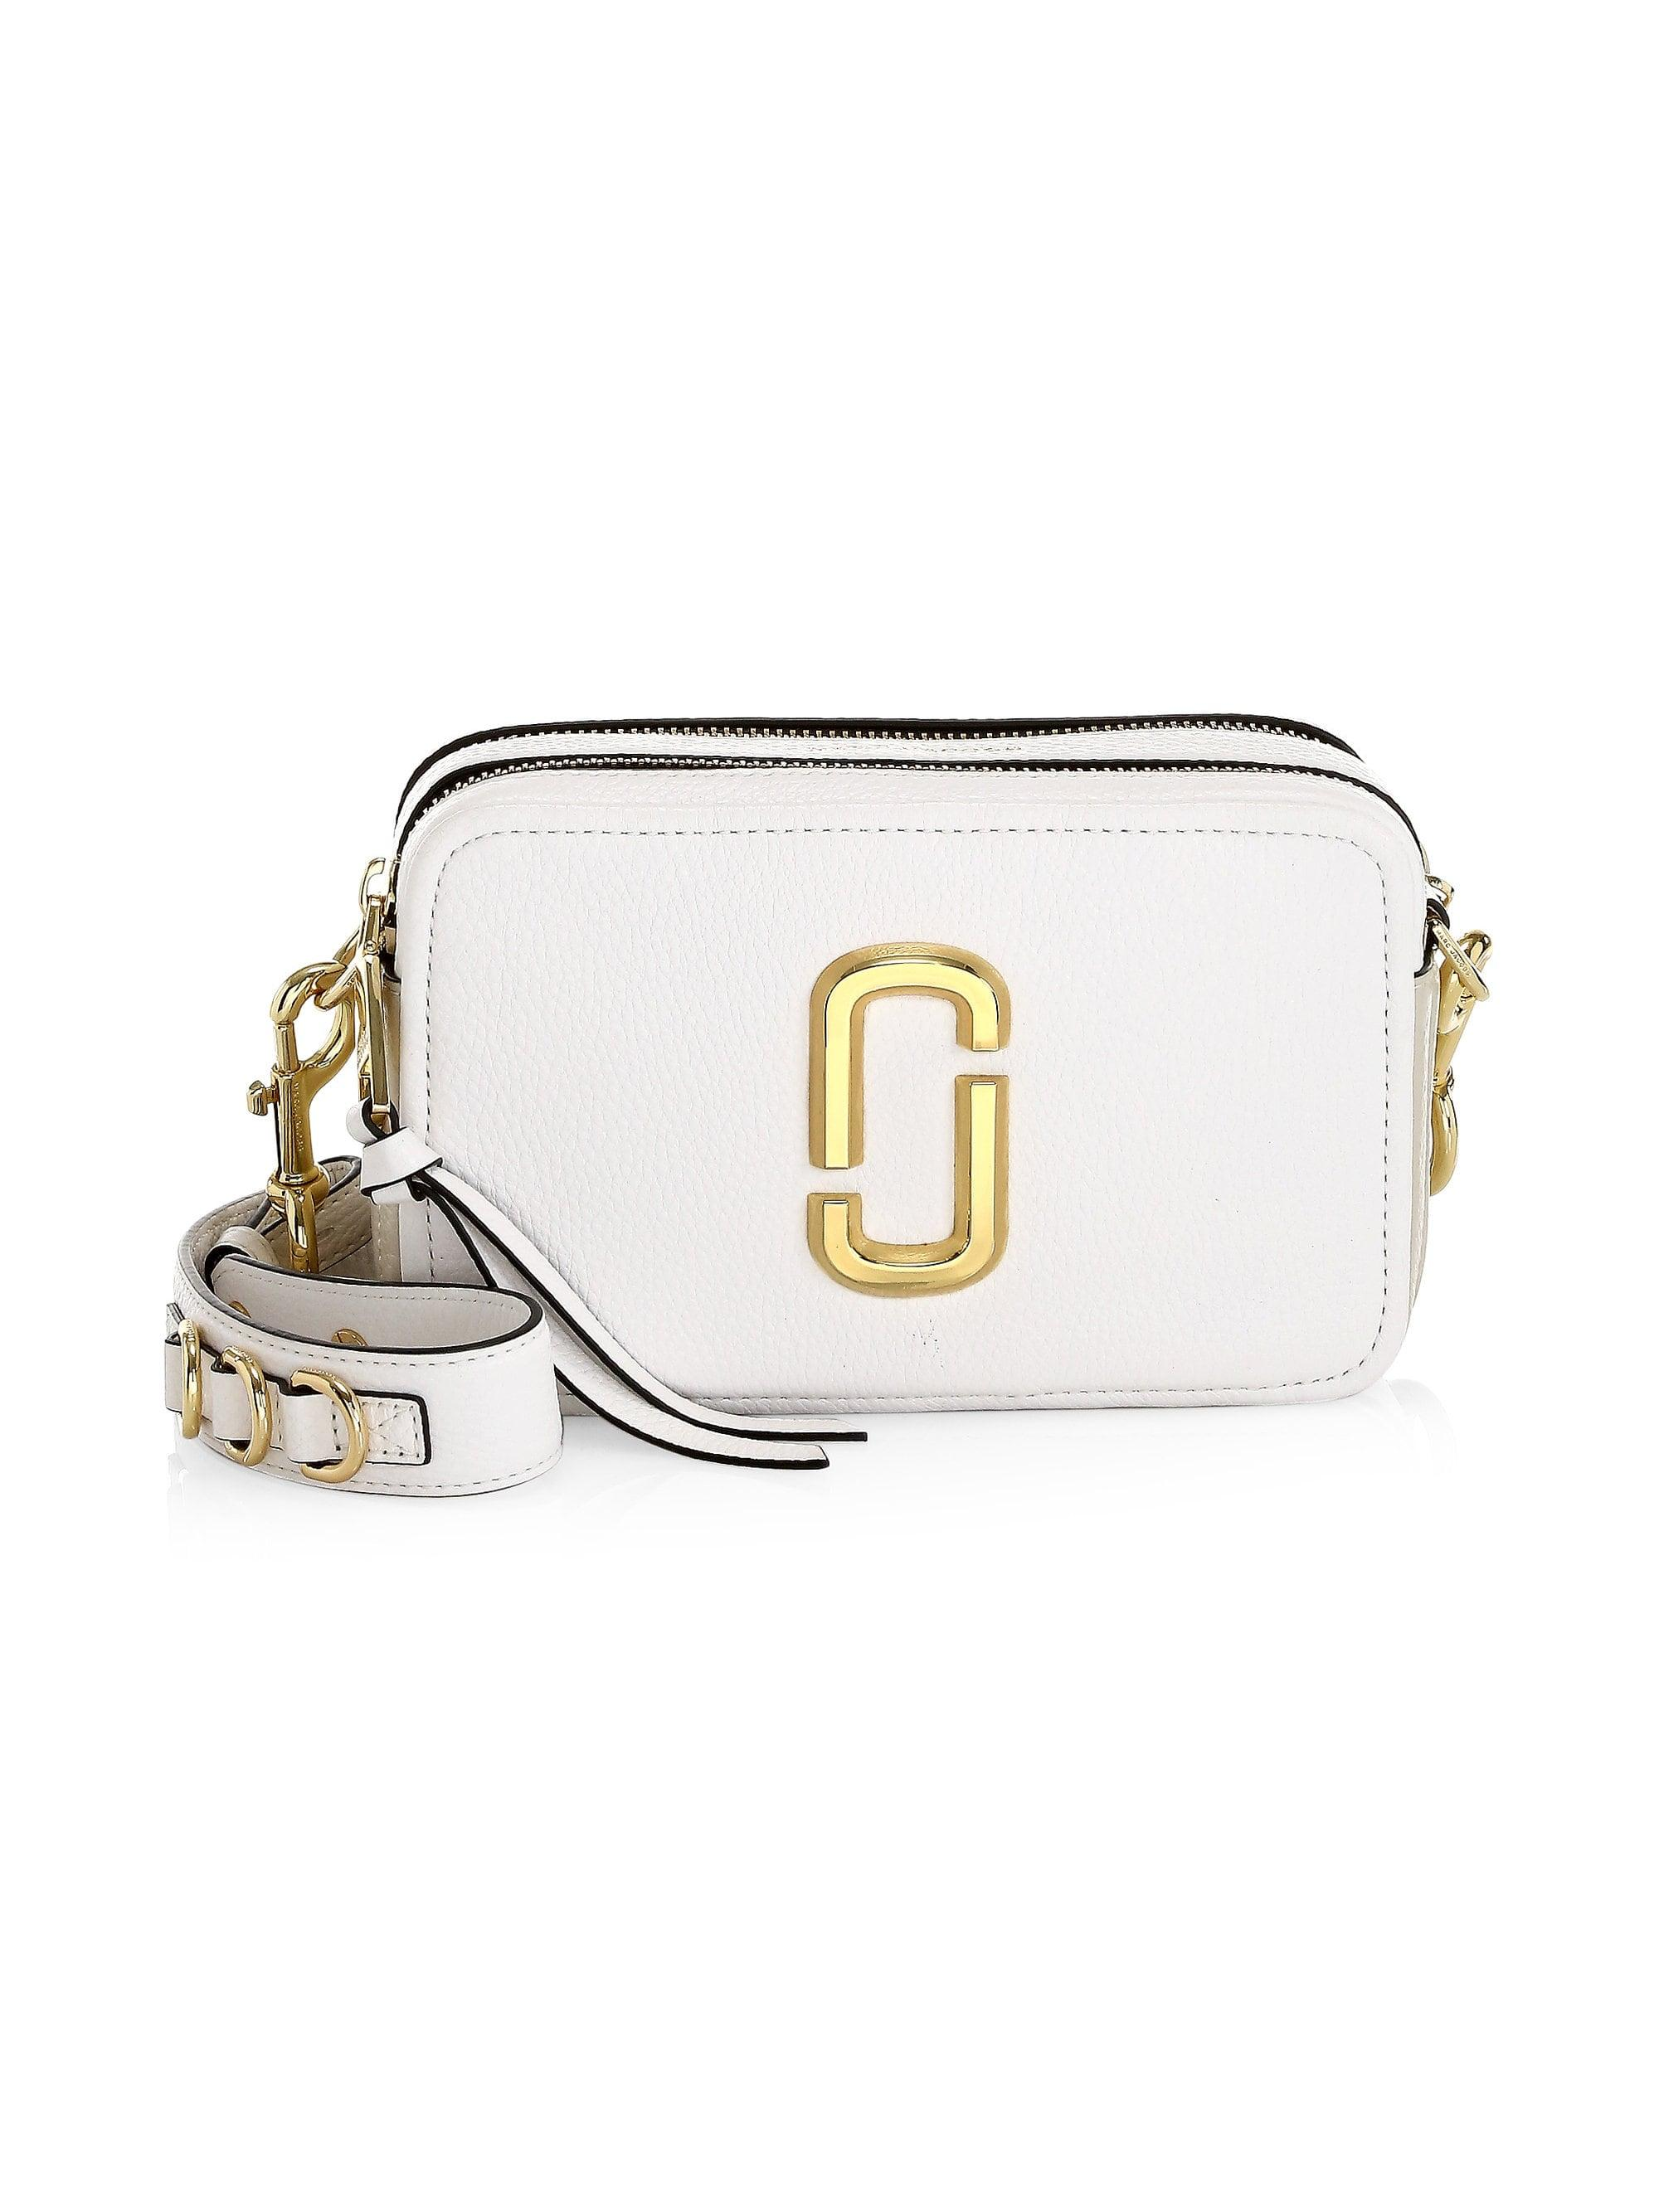 258588e6663f Marc Jacobs. Women s White The Softshot 21 Leather Crossbody Bag.  350 From Saks  Fifth Avenue